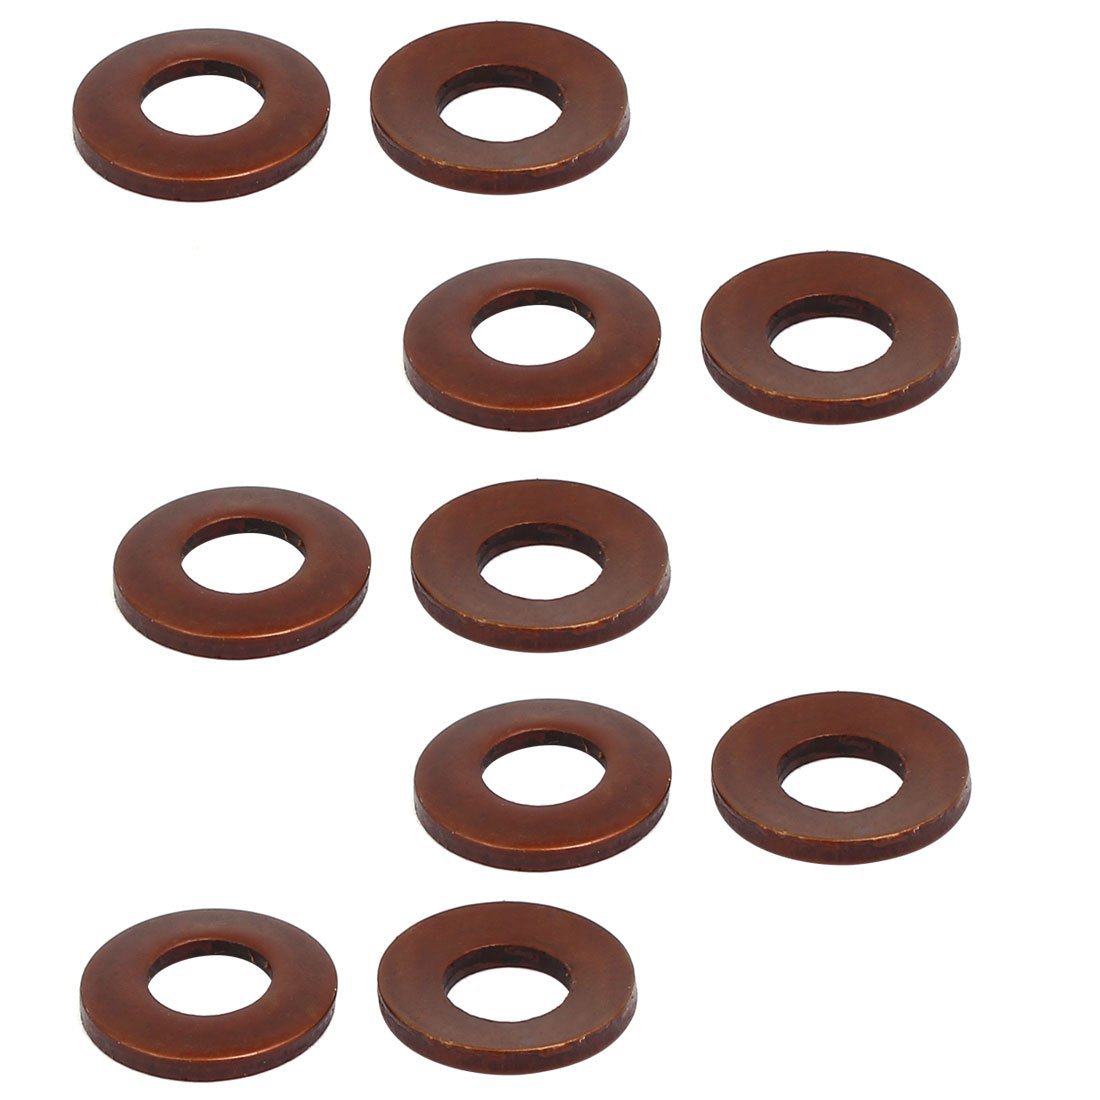 uxcell 11mm Outer Dia 5.3mm Inner Dia 1.2mm Thickness Metric Belleville Spring Washer 10pcs